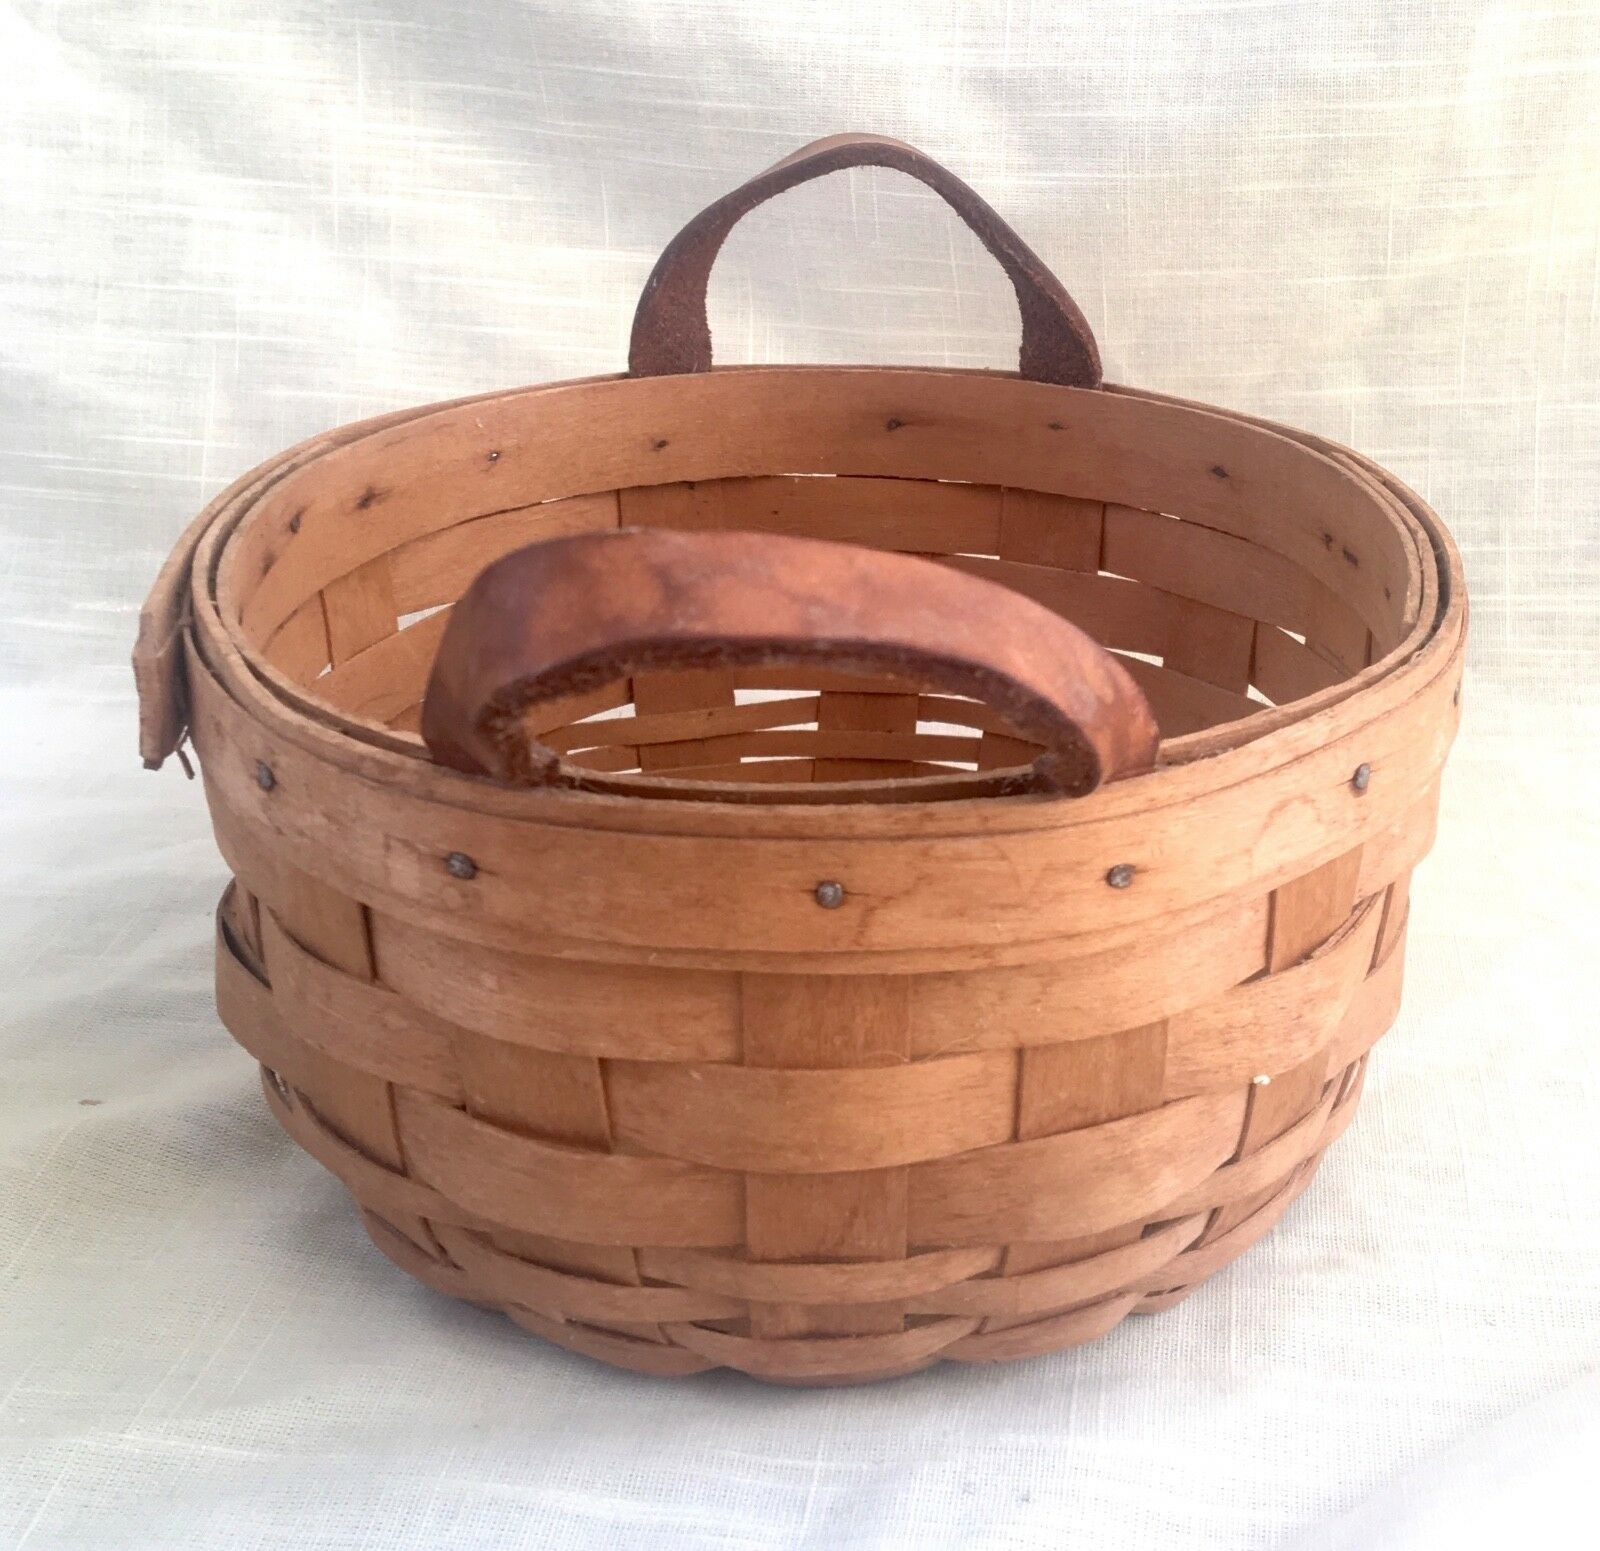 Vintage Small Round Vintage Longaberger Basket w/Leather Handles - 1998 SRP